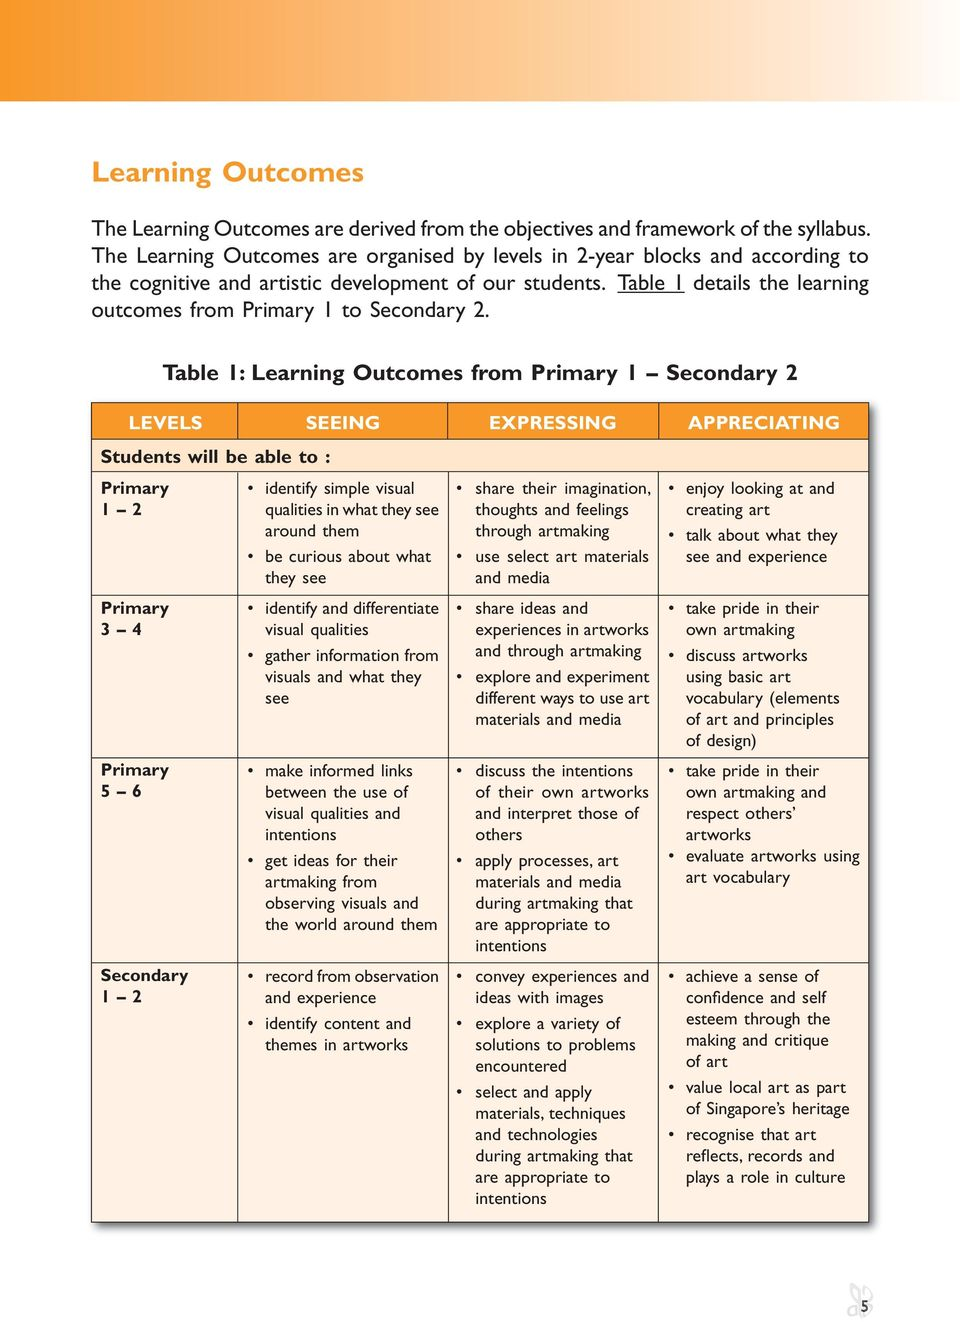 Table 1 details the learning outcomes from Primary 1 to Secondary 2.